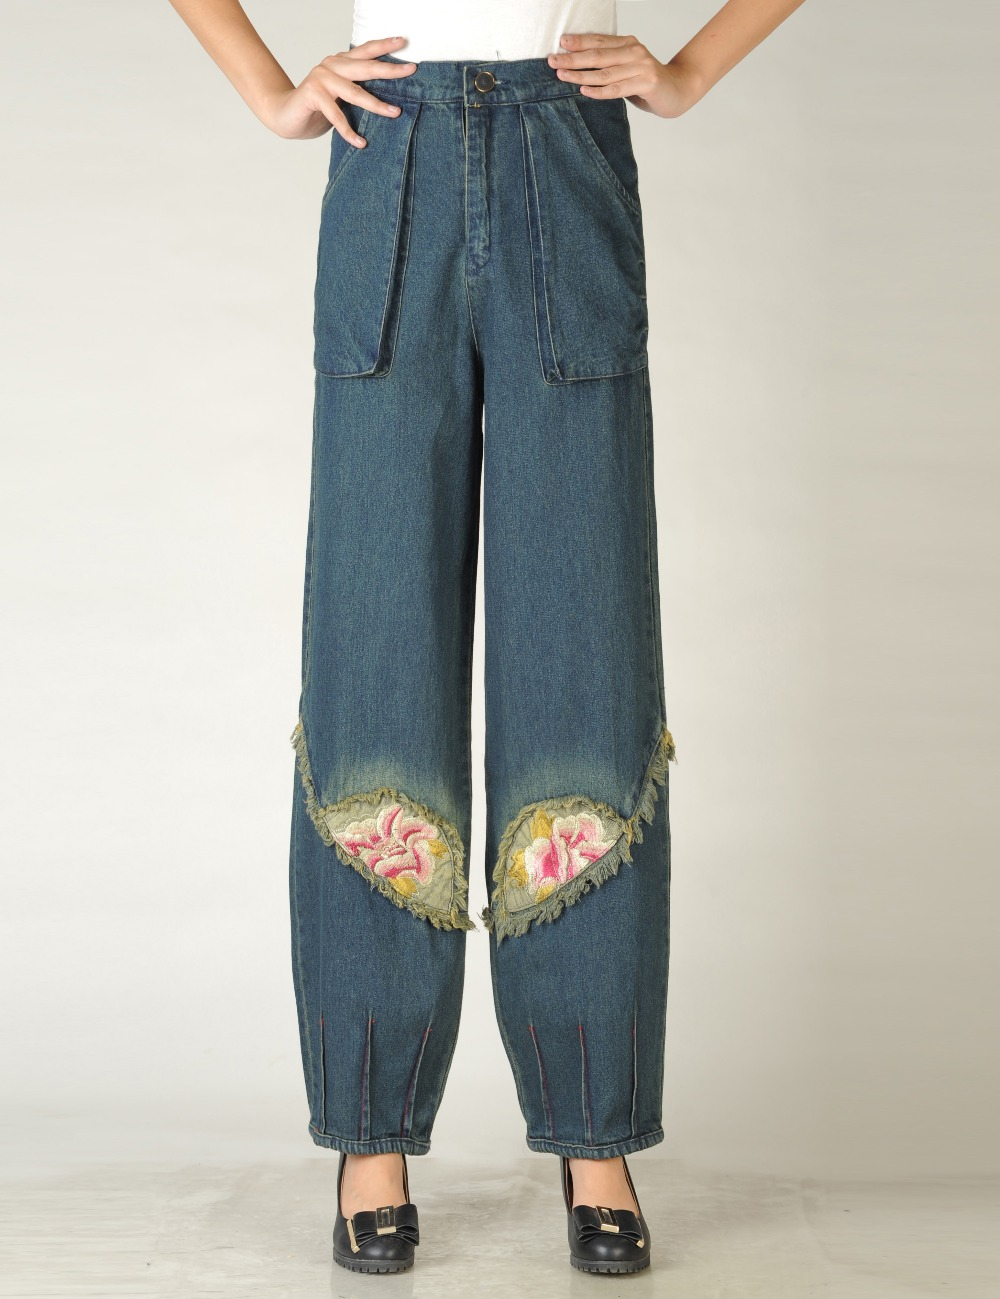 spring Autumn female trousers national trend embroidered denim font b jeans b font plus size high